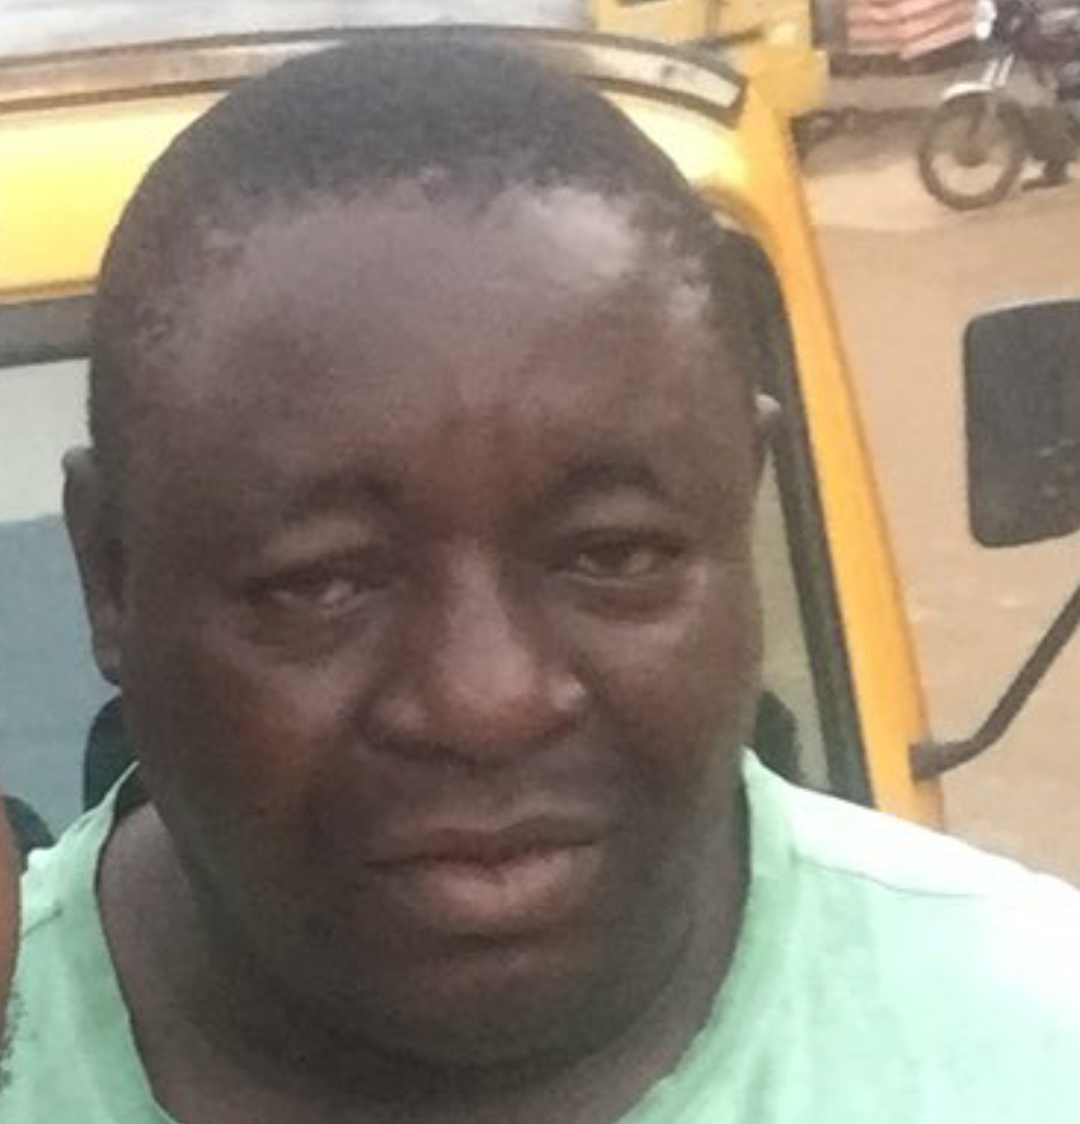 Keke man who returned lost iPhone to it's owner